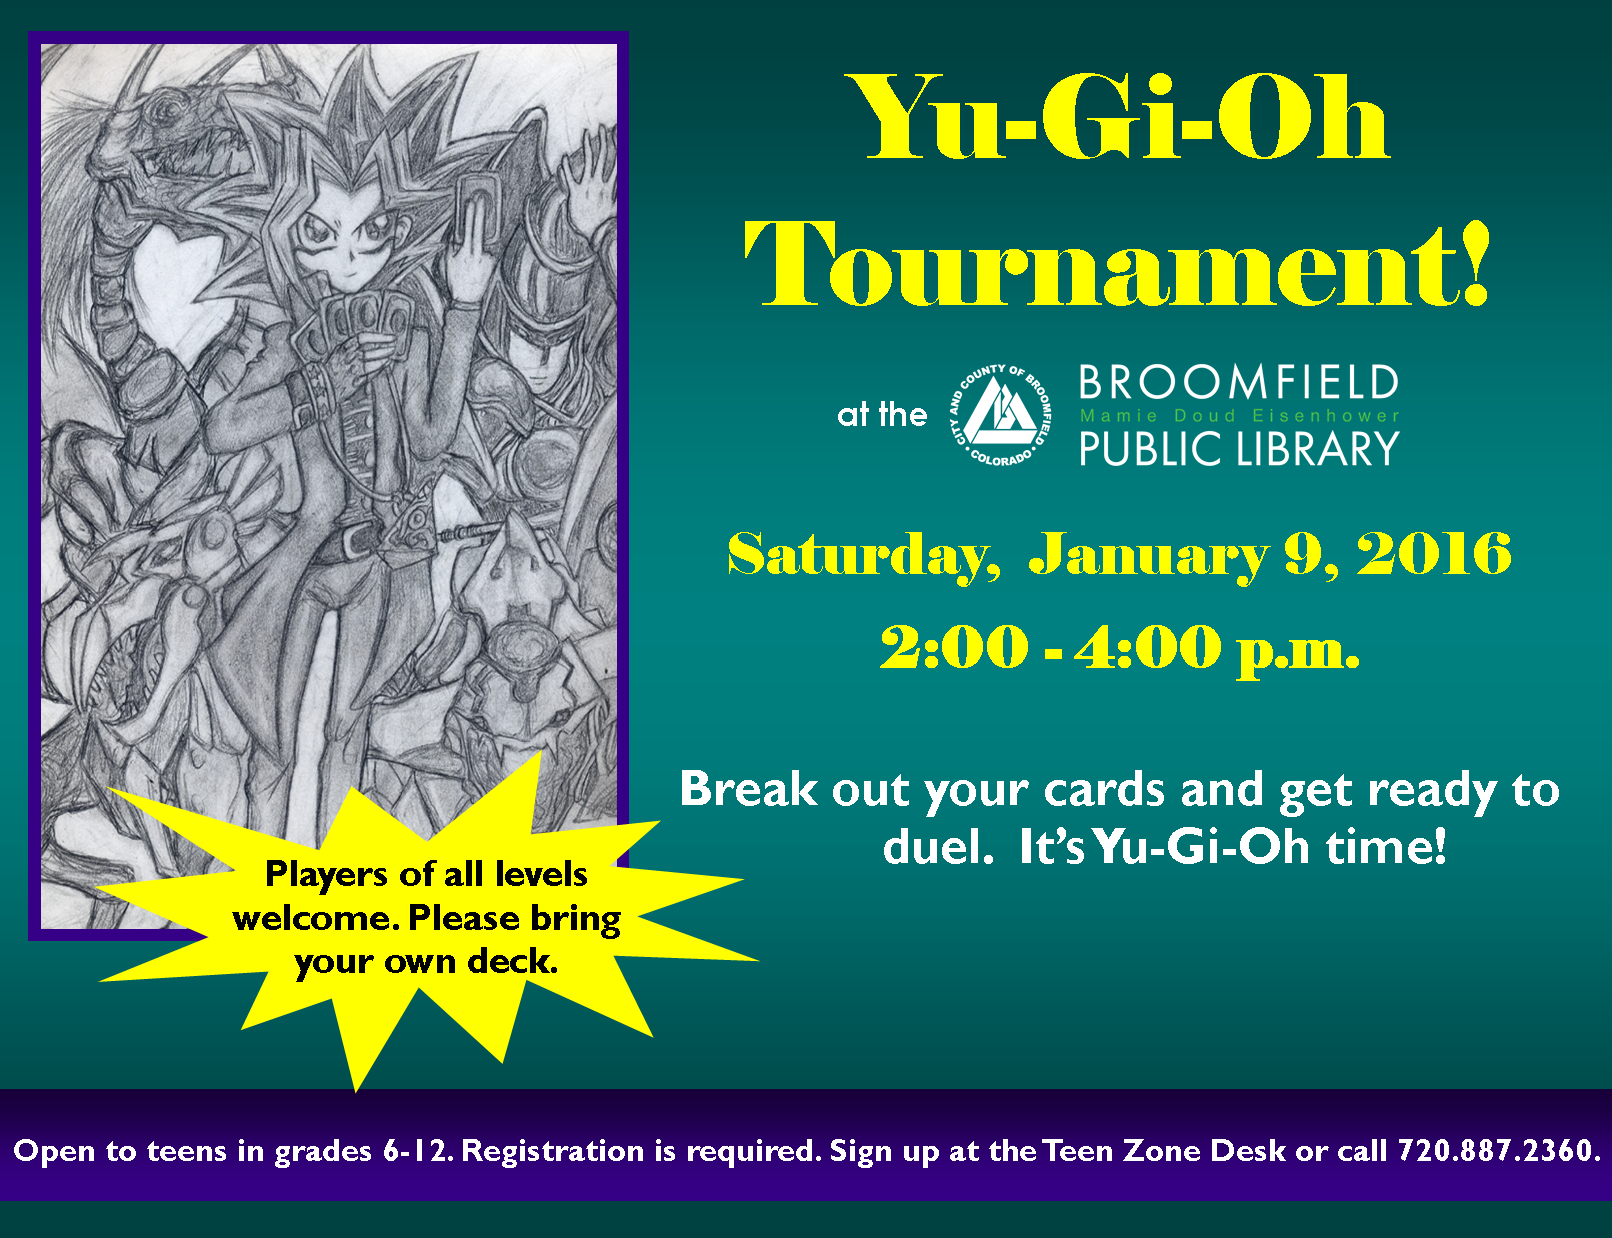 Yu-Gi-Oh Tournament Flyer_January 9.png